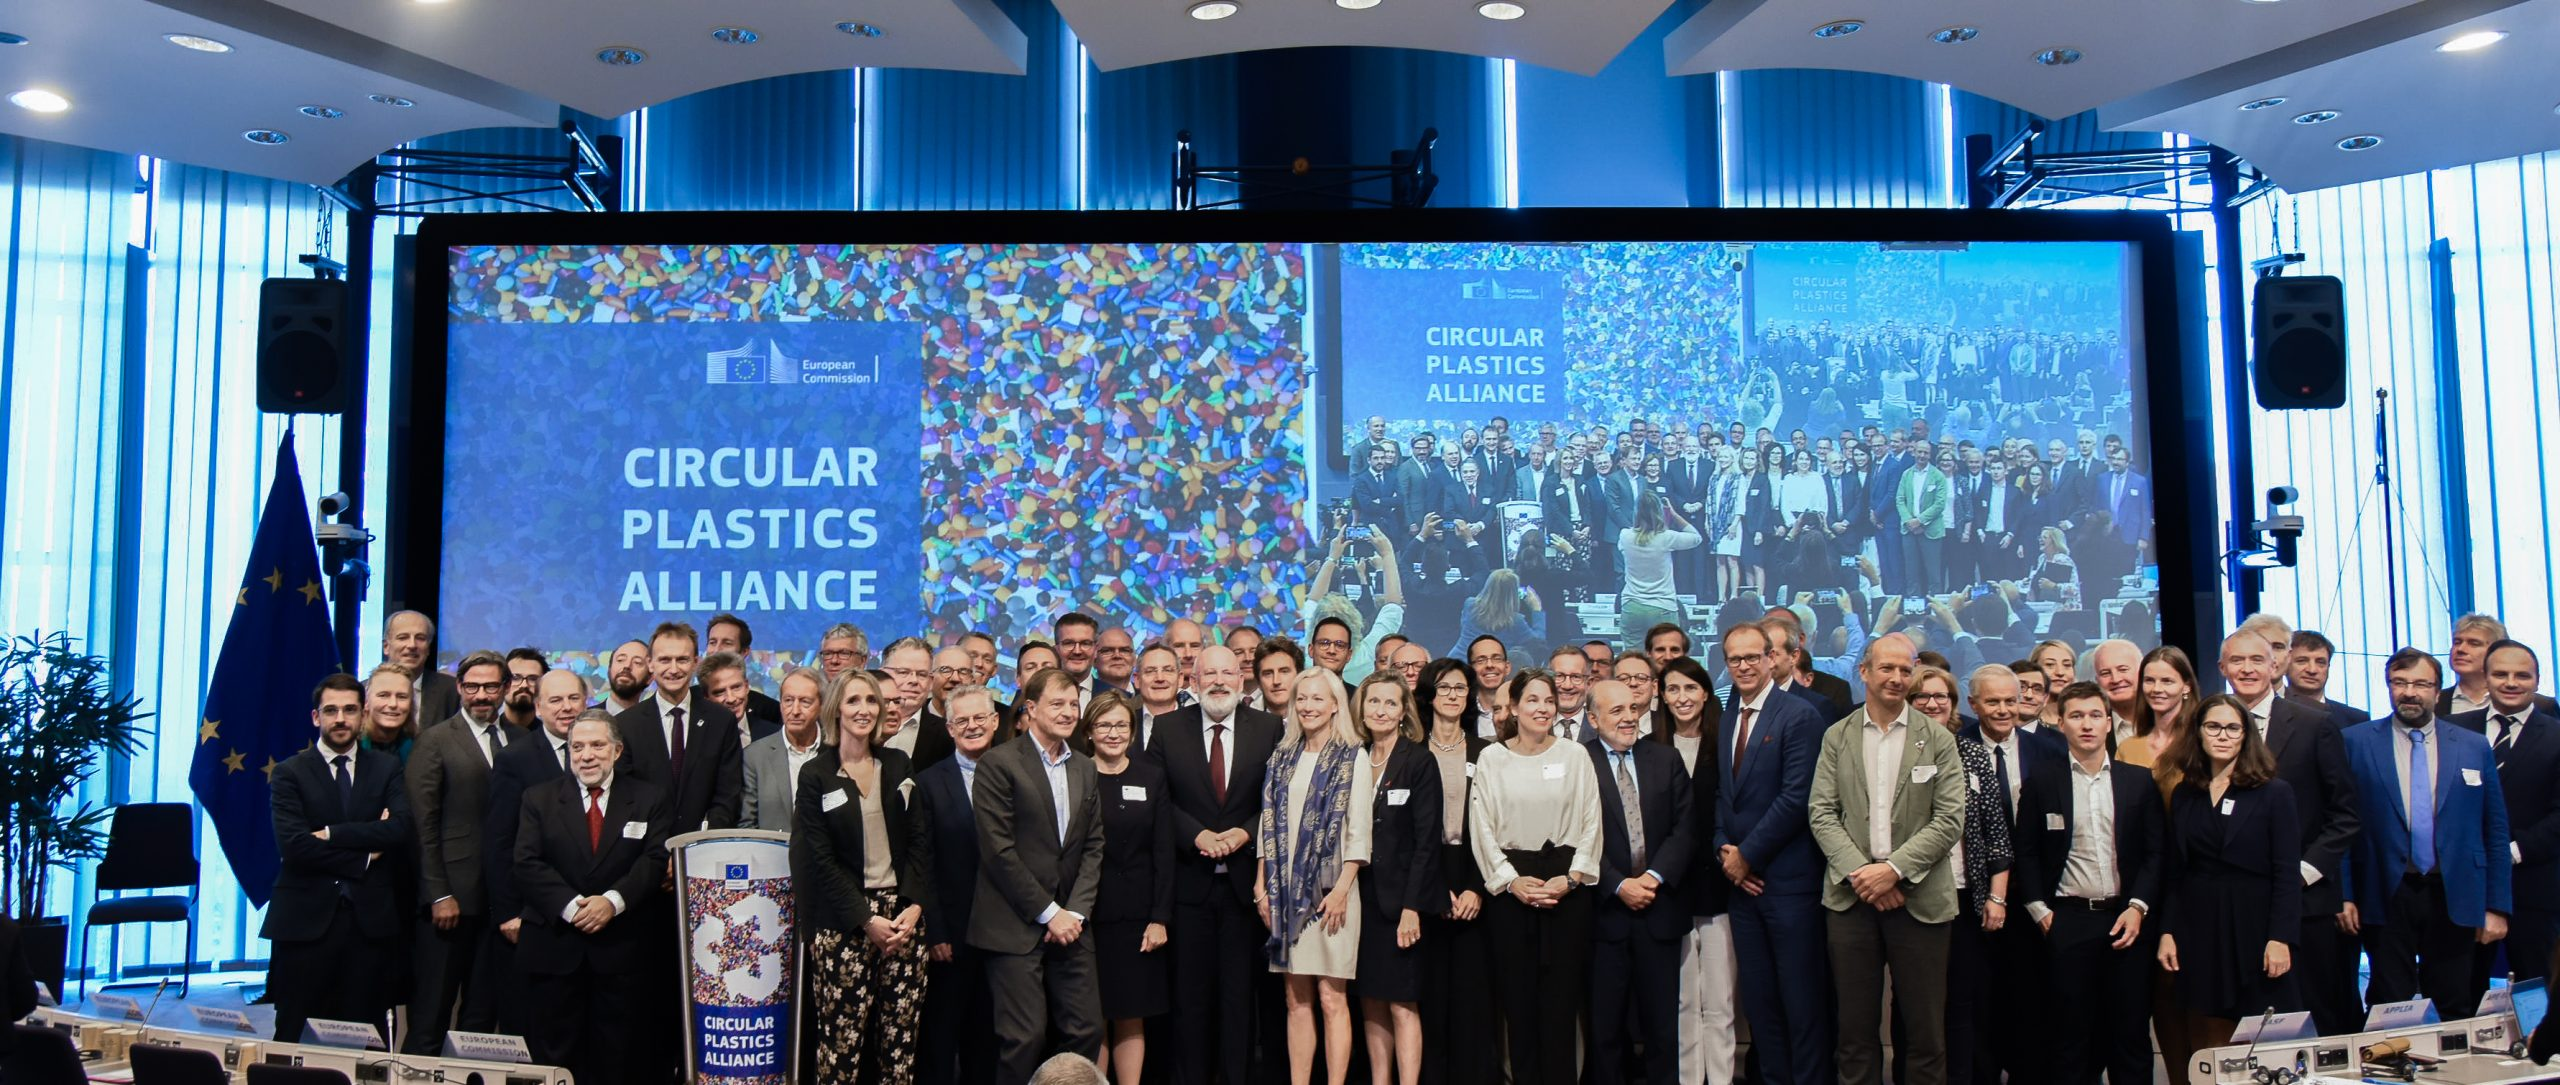 Circular Plastics Alliance high-level conference